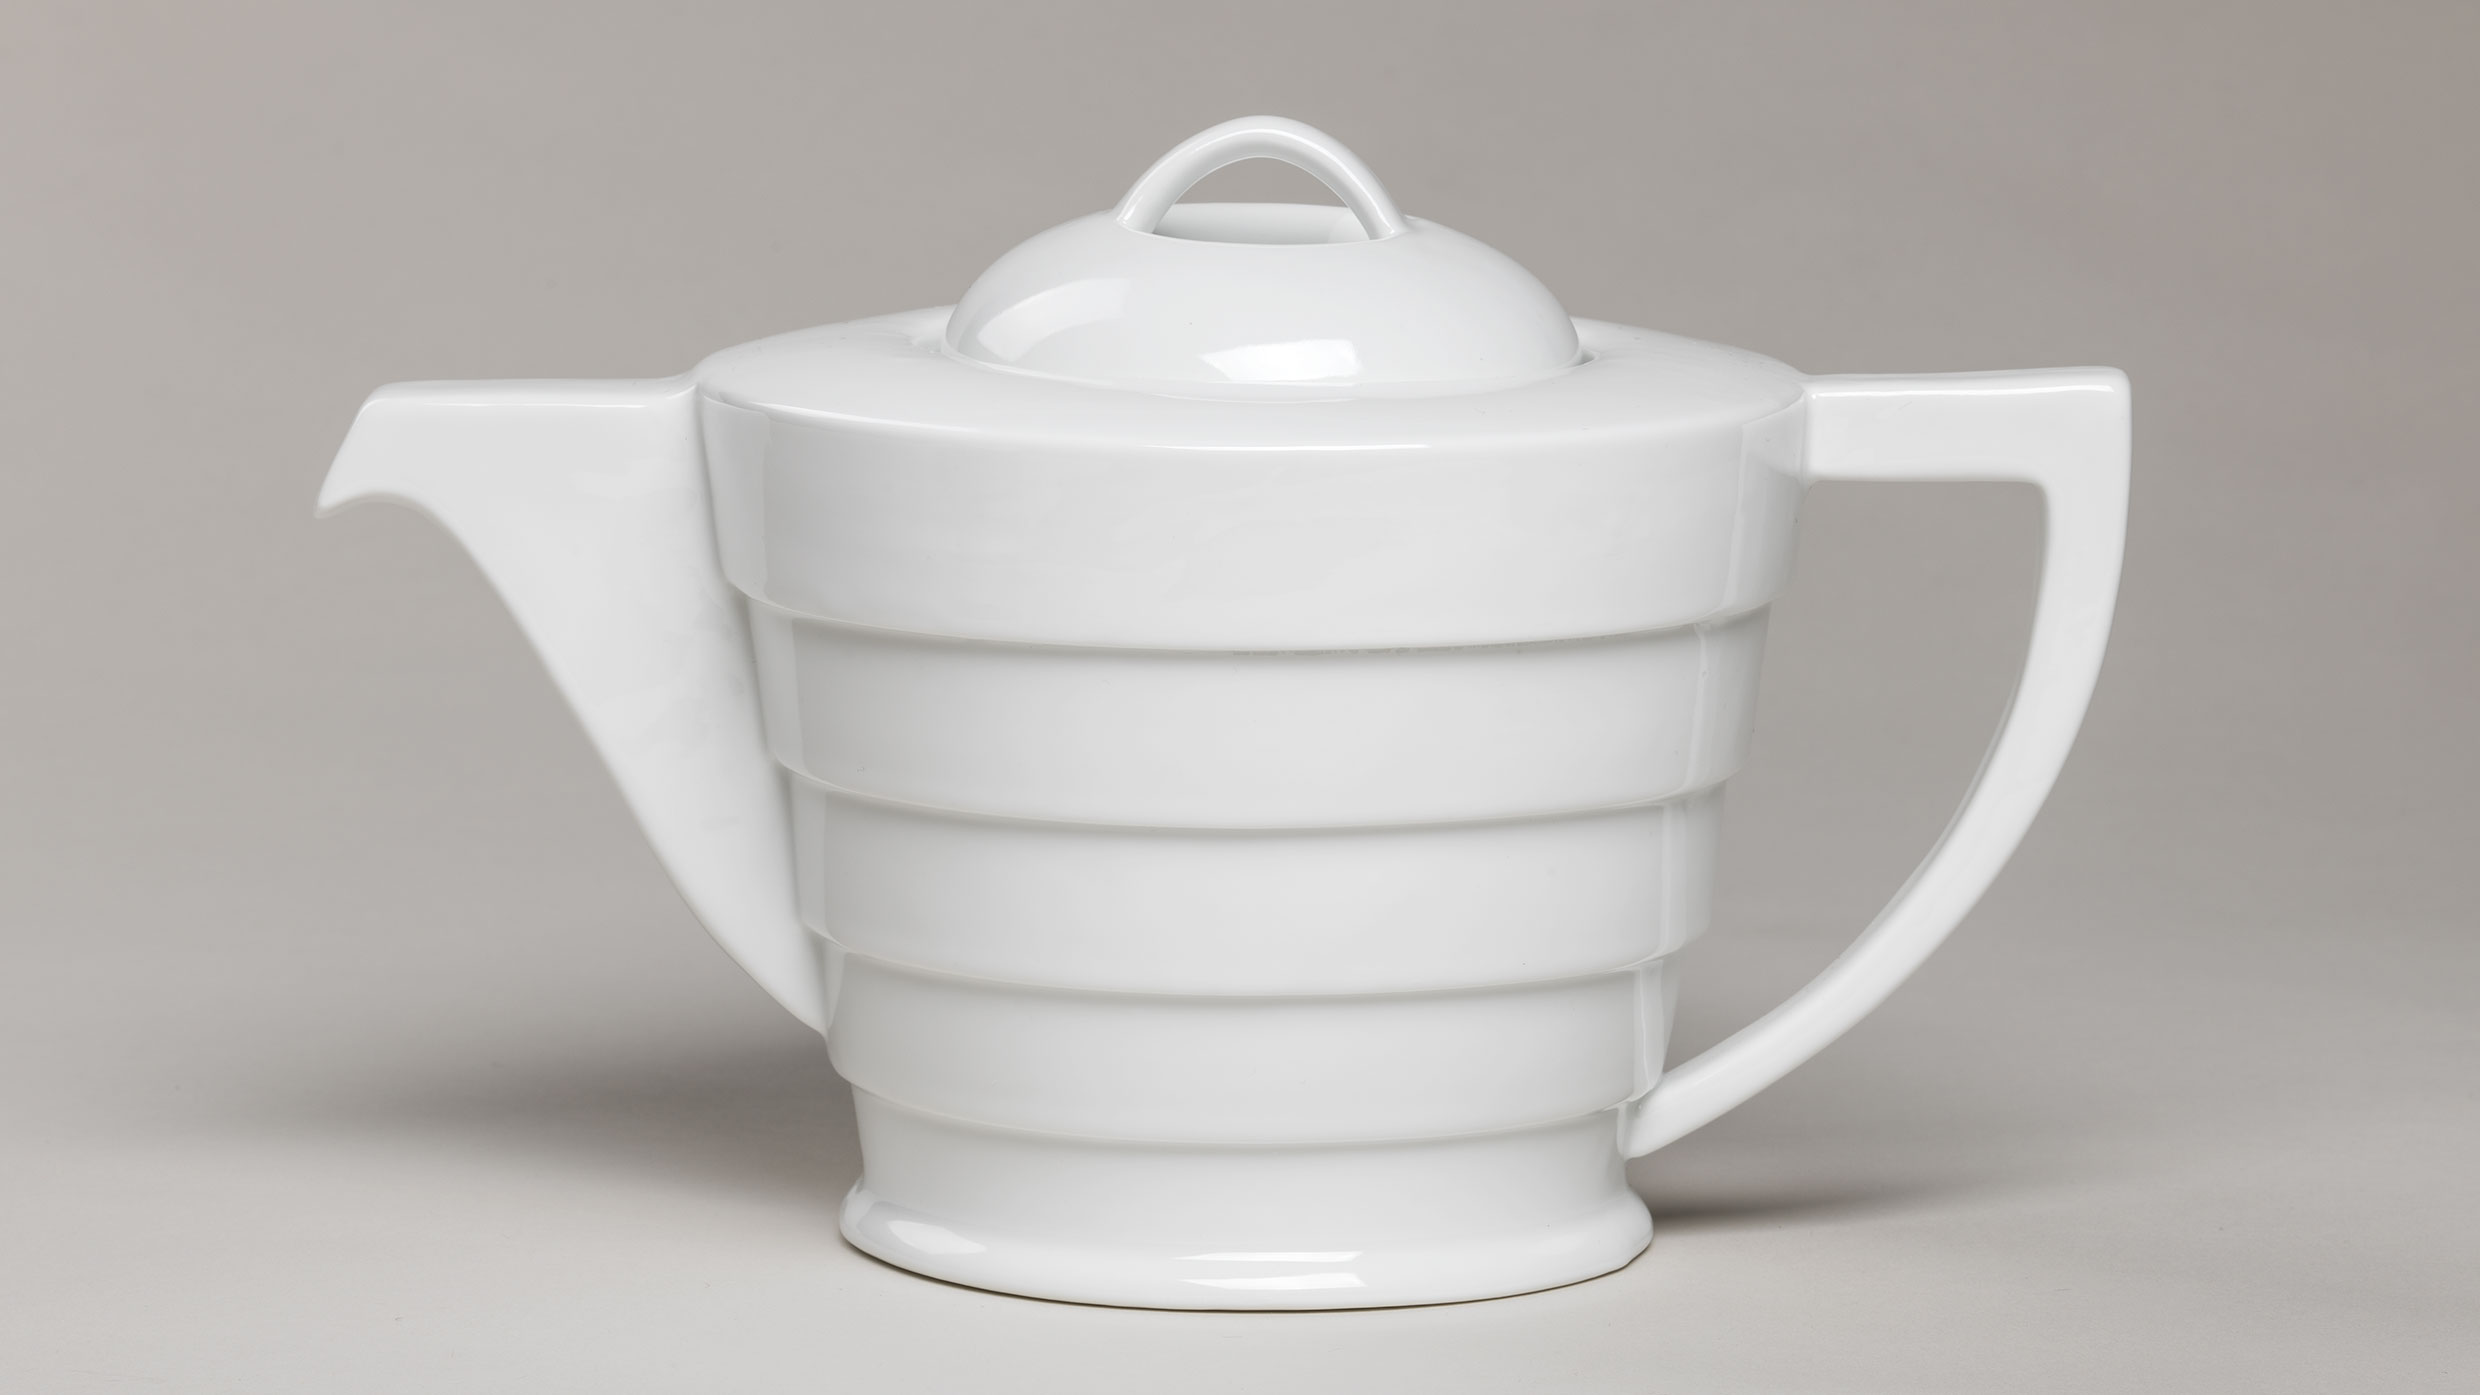 This teapot is part of a set soon to be offered in the Guggenheim Store. Photo: Kristopher McKay